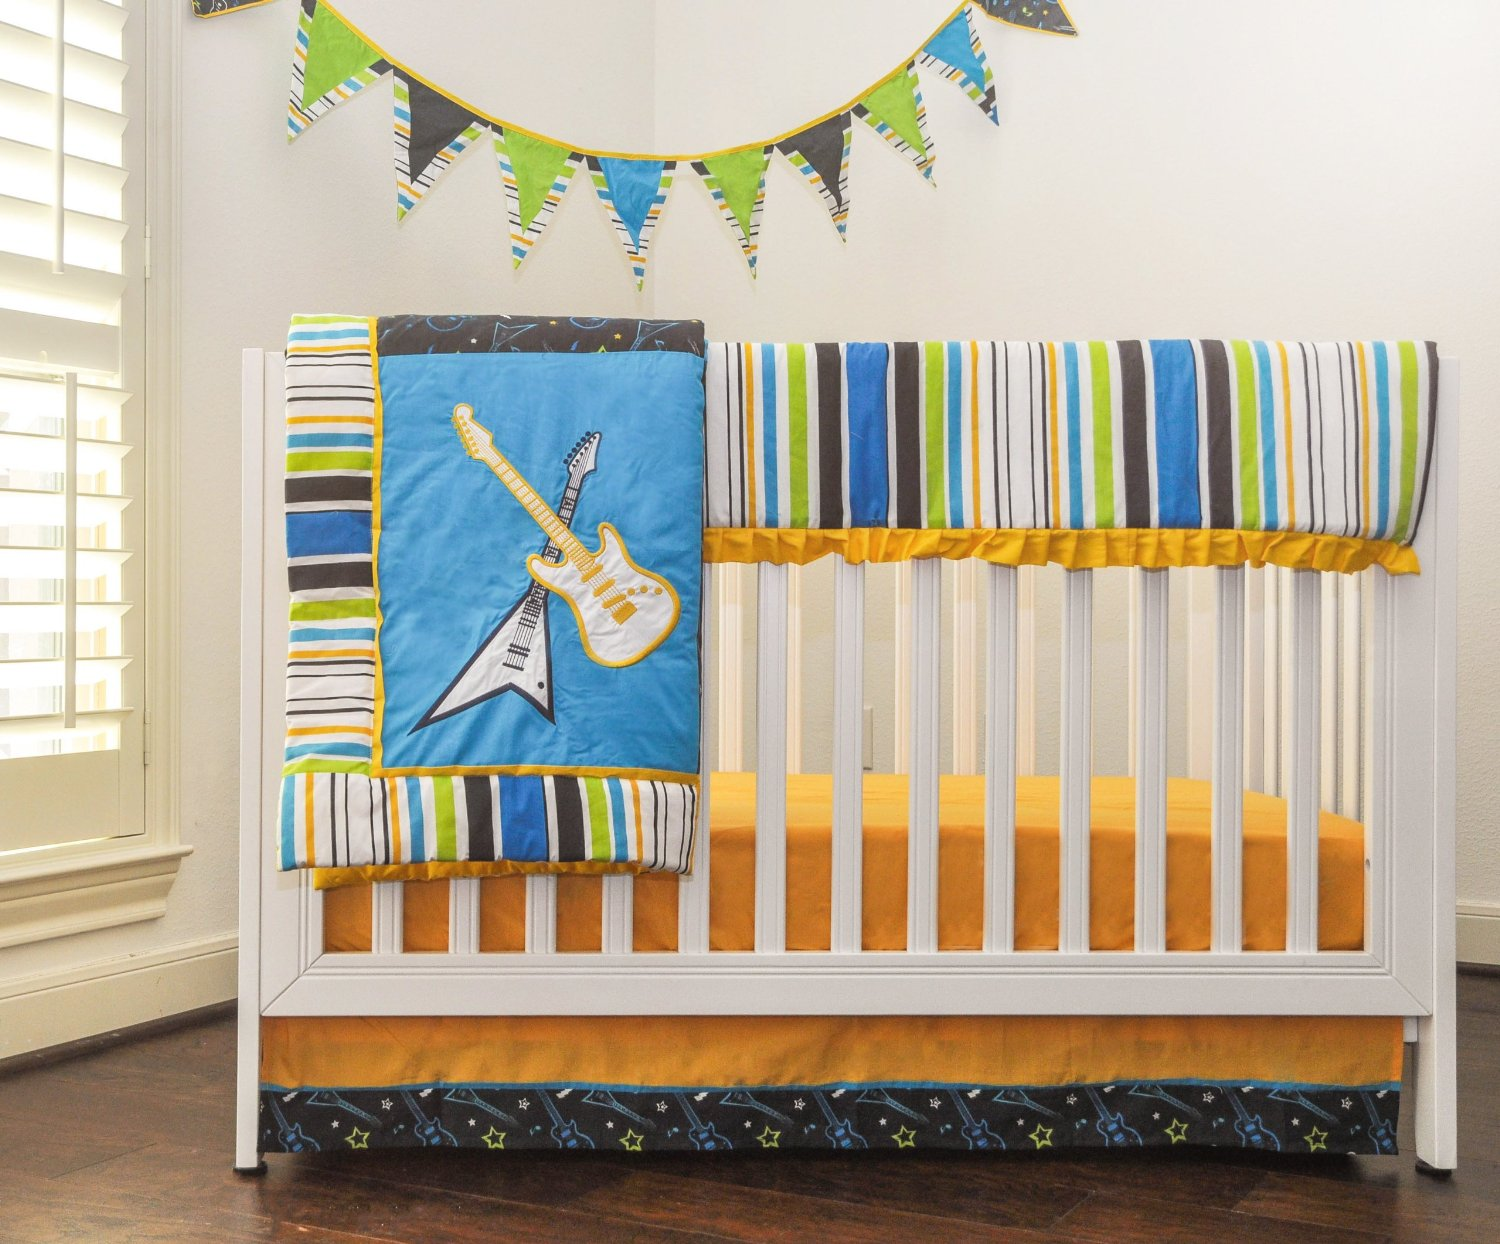 Pam Grace Creations Rock Star Baby Bedding And Decor Baby Bedding